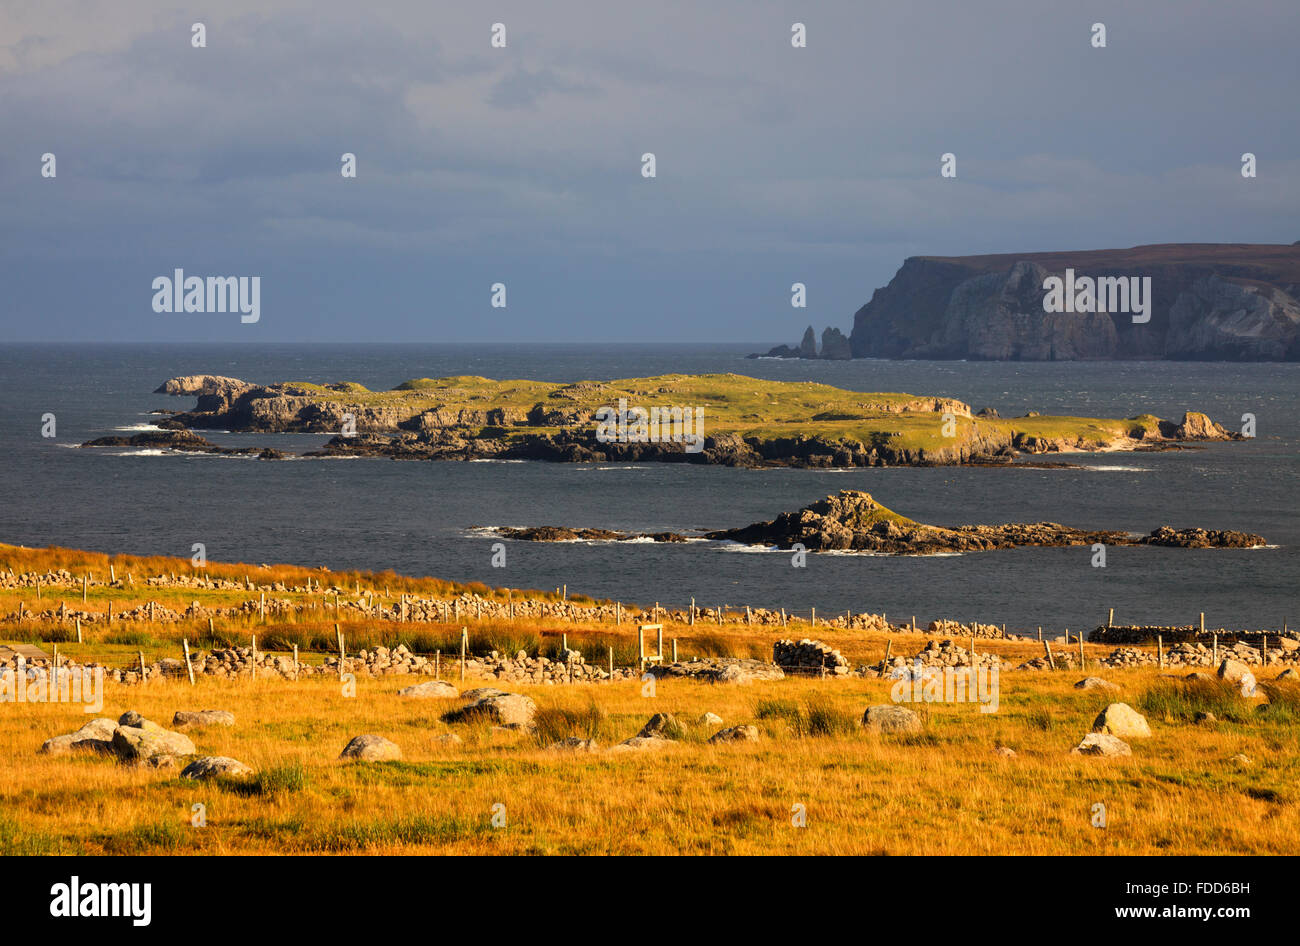 Islands near Leinnmore at the mouth of Loch Eriboll, near Durness in the far North West Highlands of Scotland - Stock Image